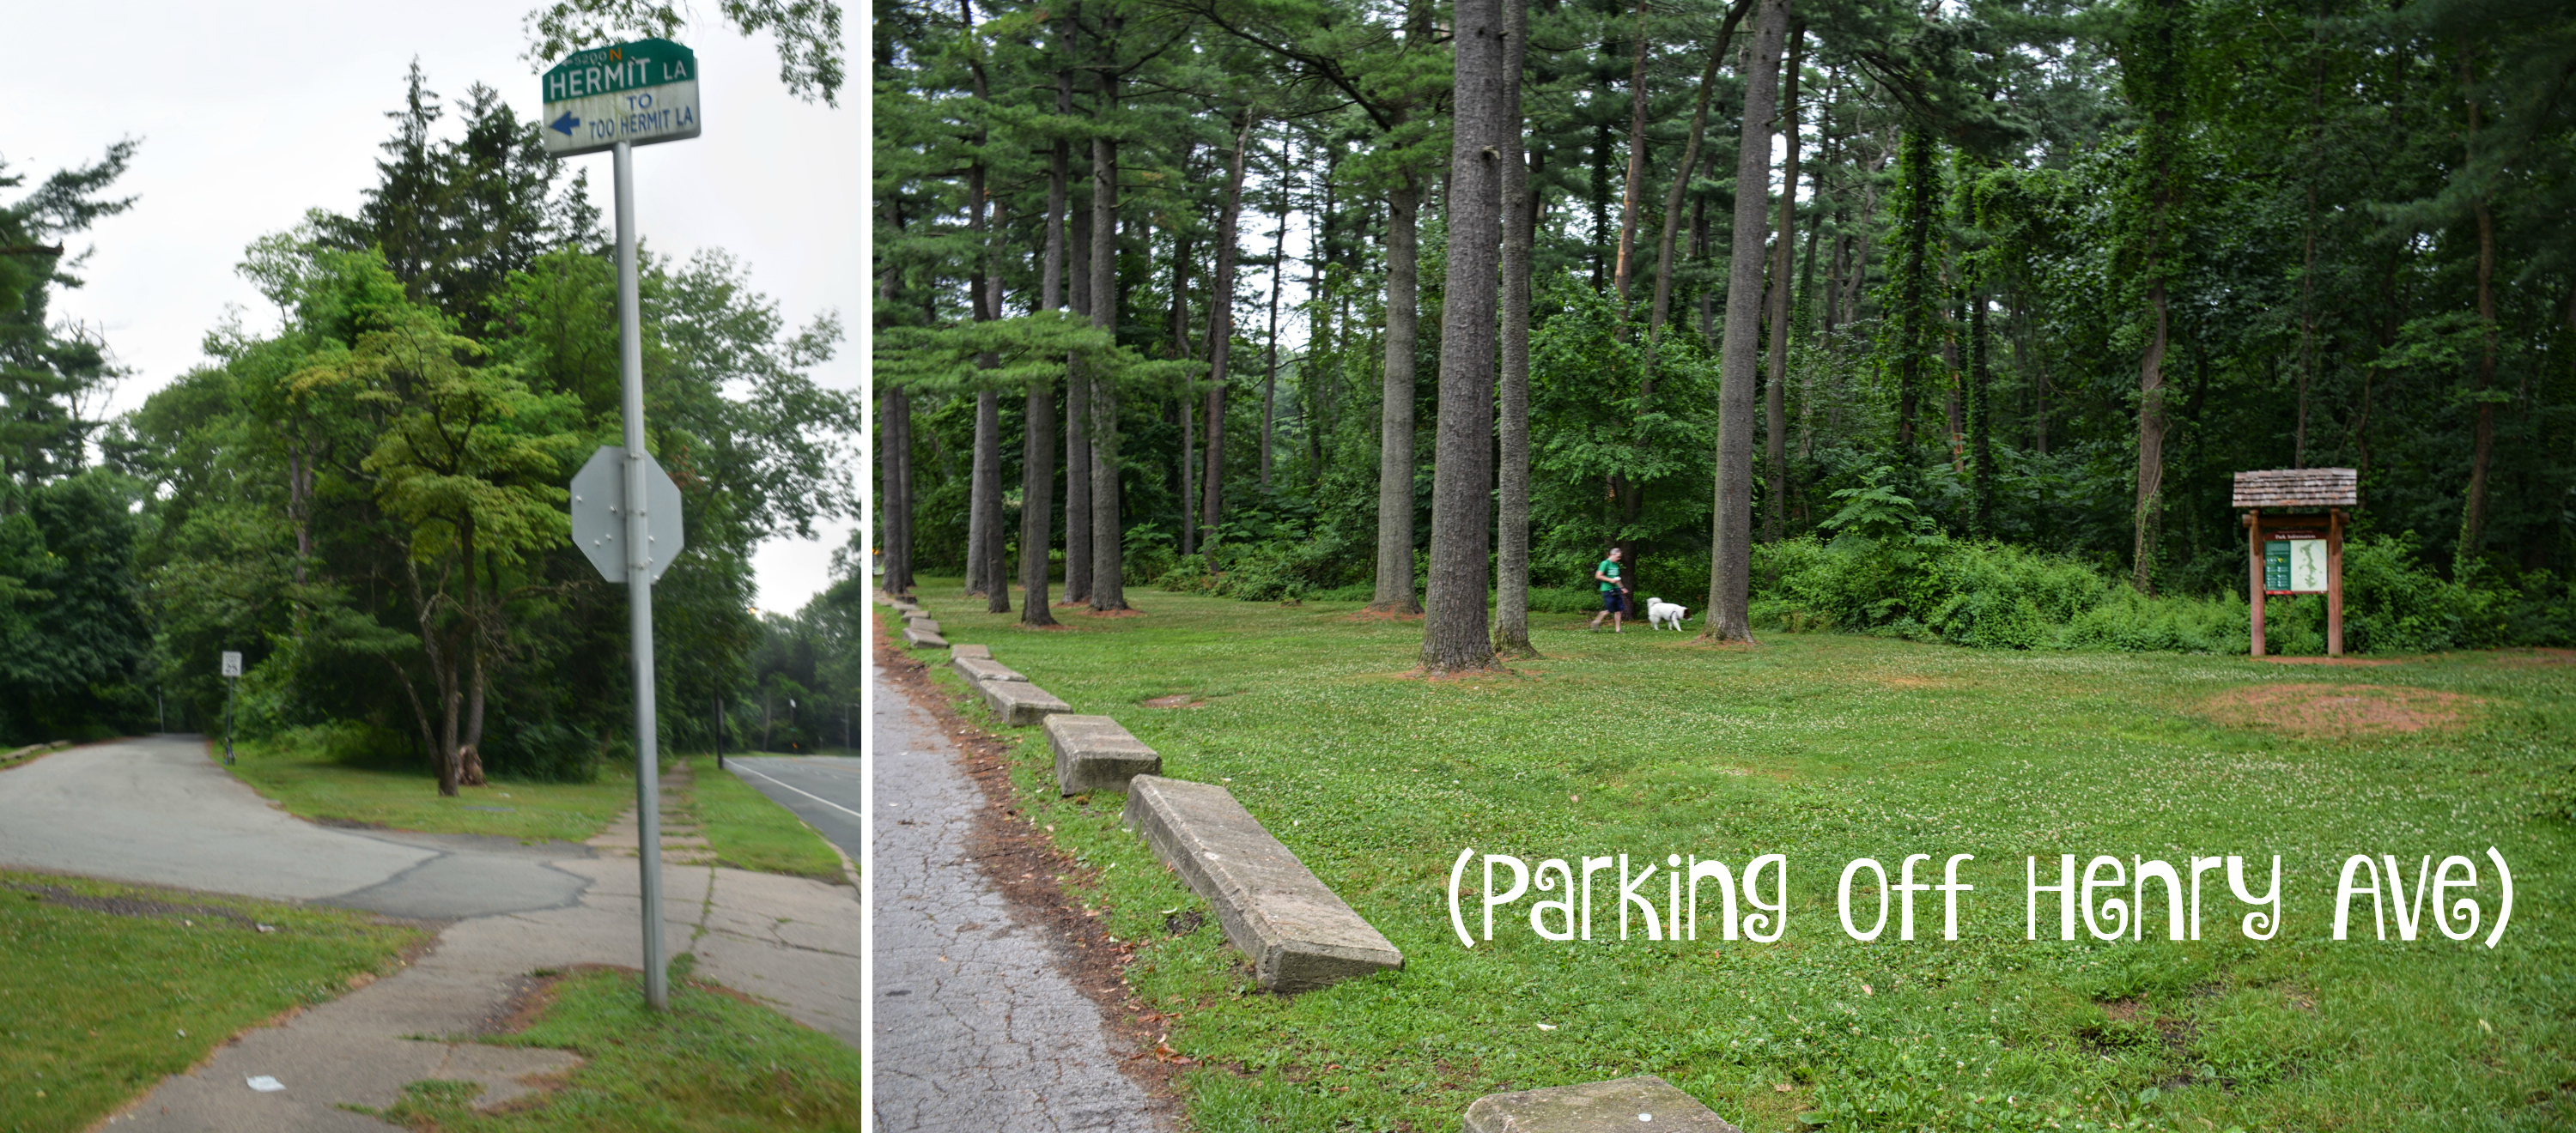 EastFallsLocal collage parking txt